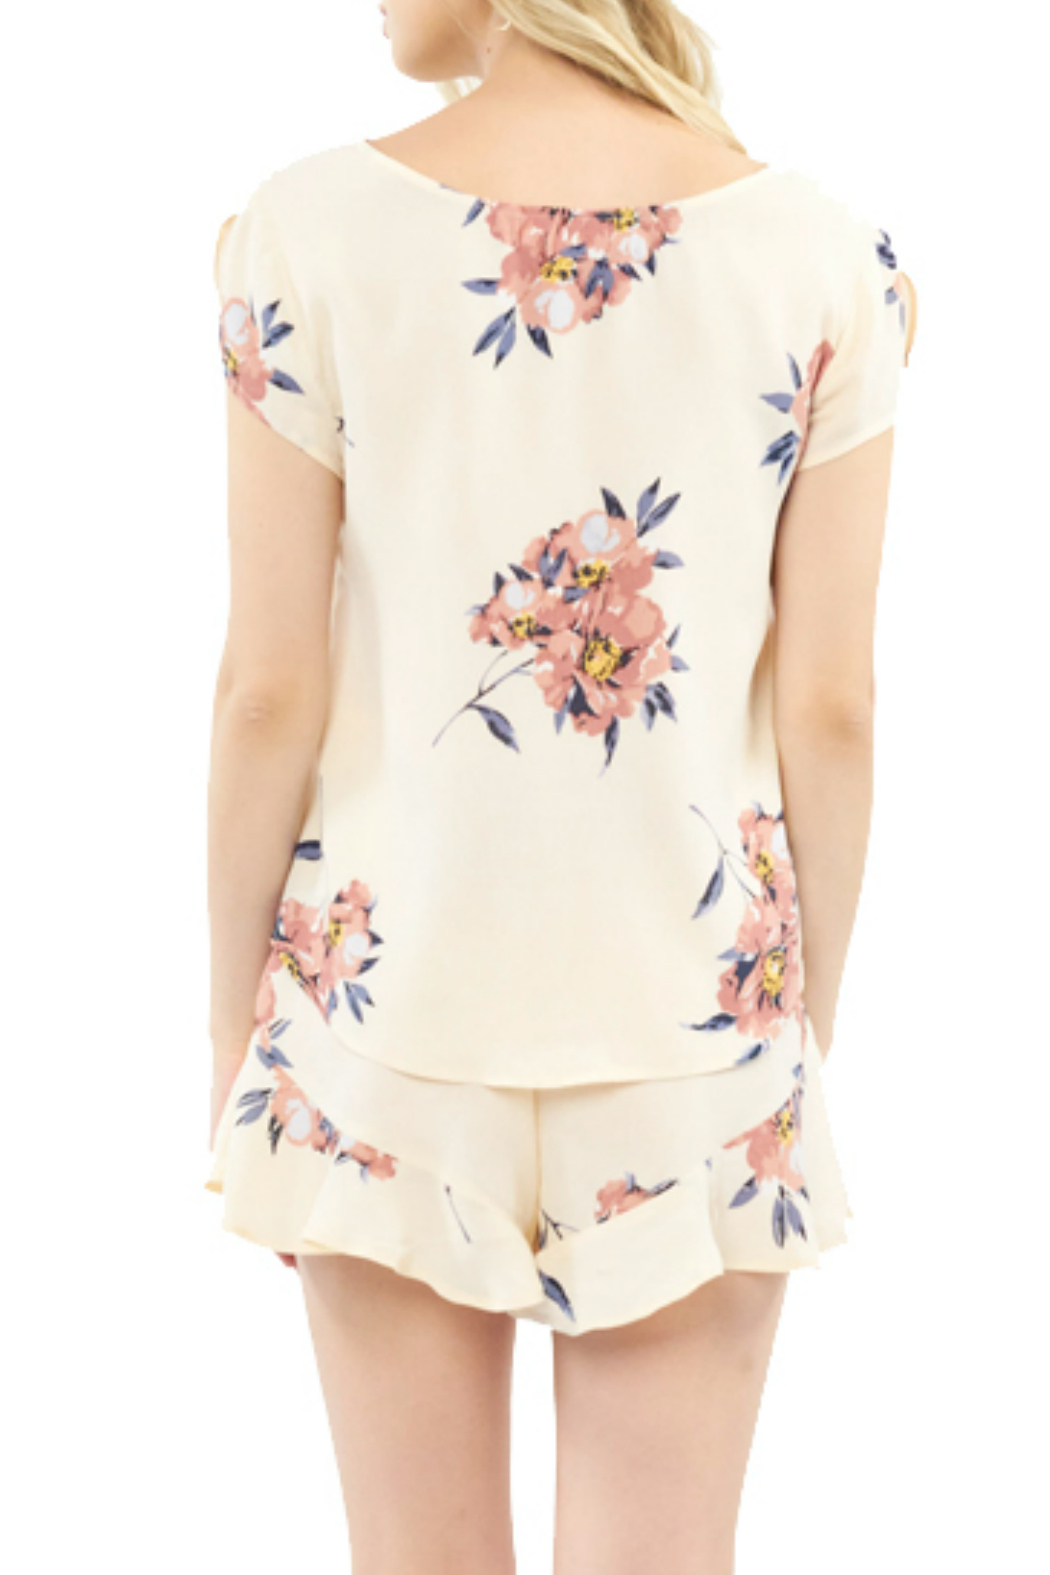 Saltwater Luxe Blossom Print S/S Button front Top - Front Full Image